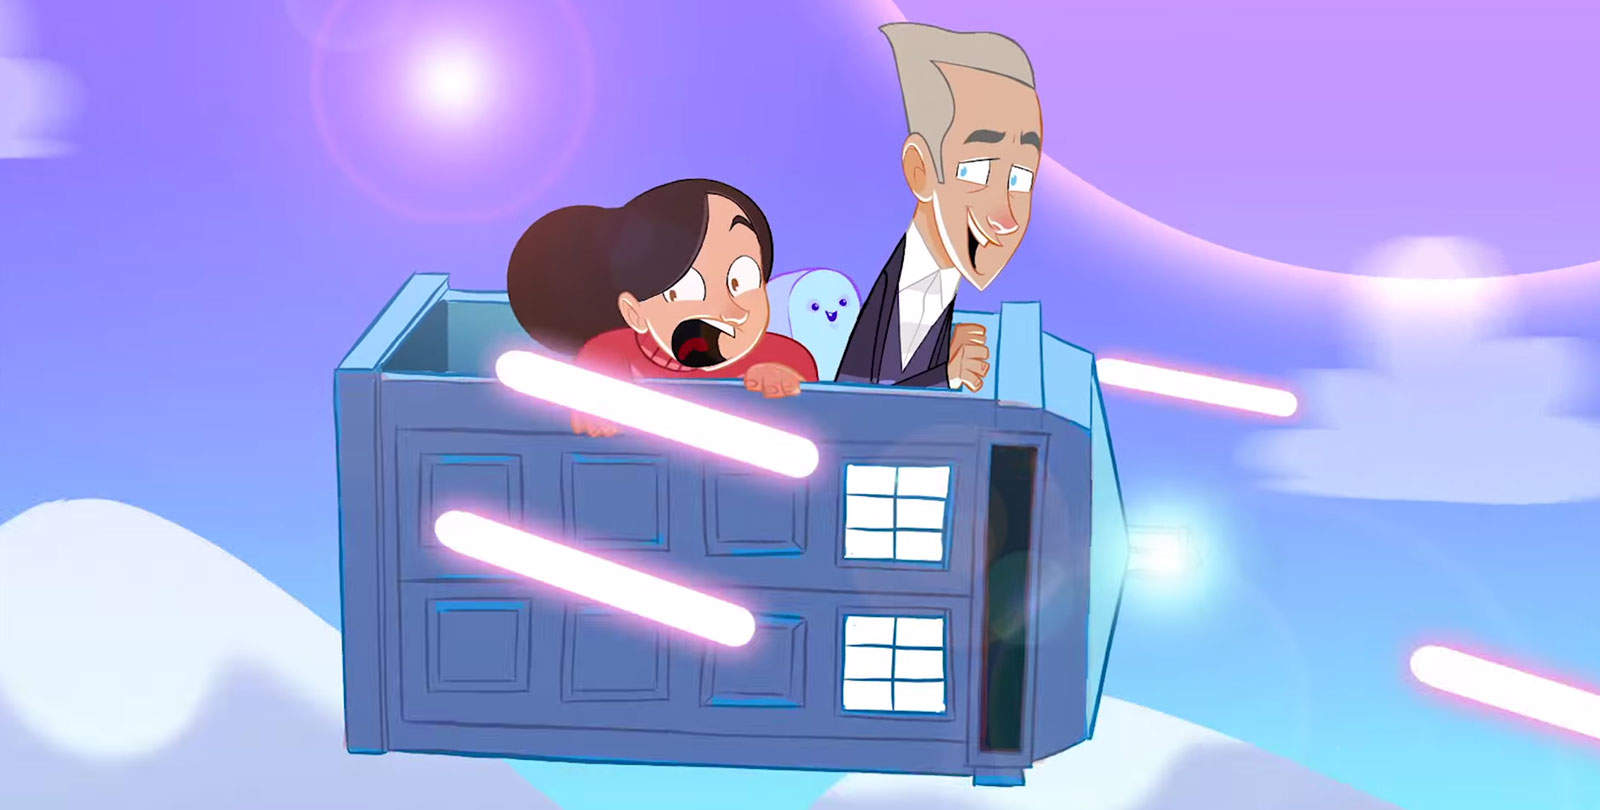 Imagining Doctor Who as an Animated Adventure